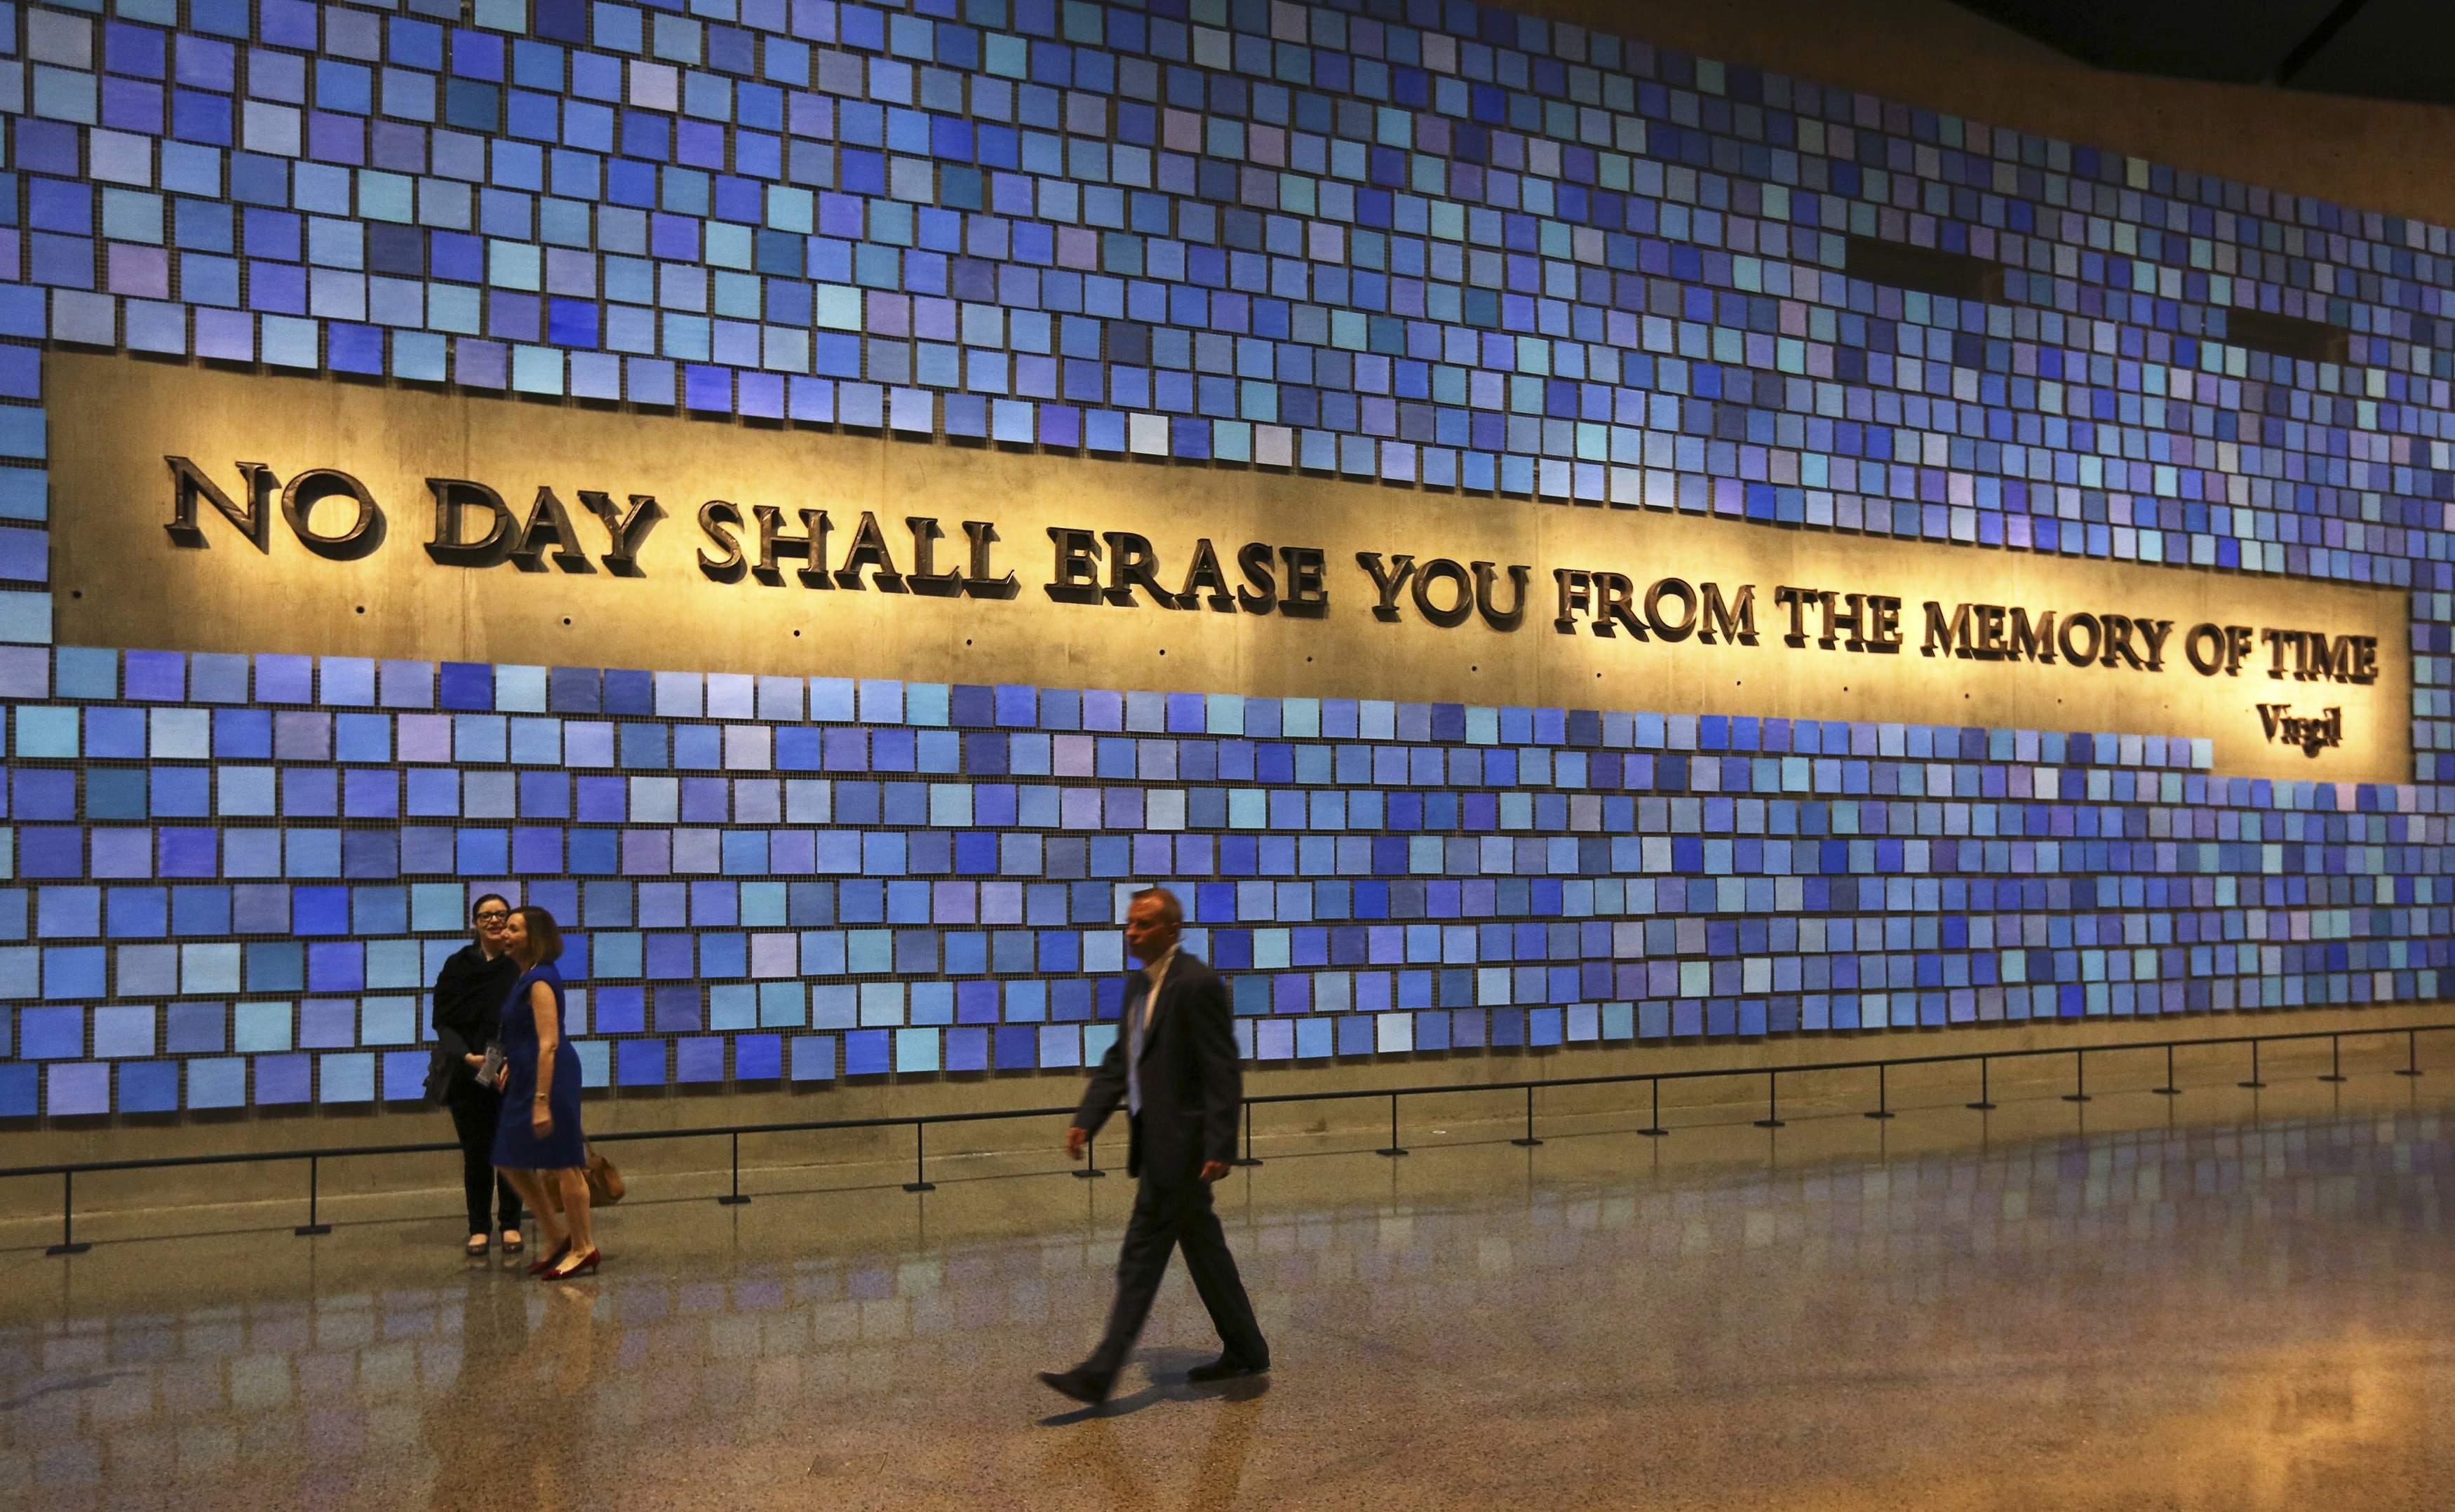 9 11 Memorial Museum Opening In Pictures A Closer Look At